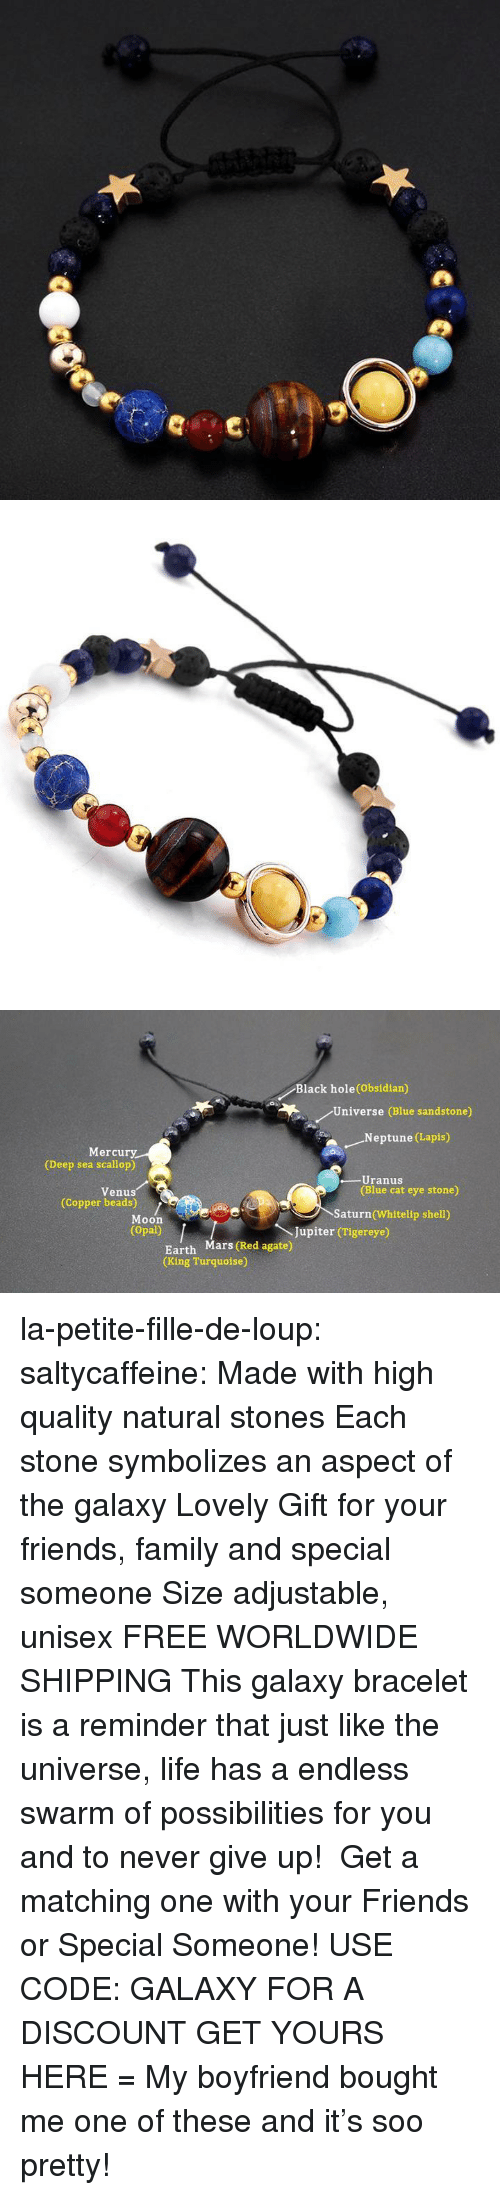 Family, Friends, and Life: Black hole(Obsidian)  Universe (Blue sandstone)  .Neptune (Lapis)  Mercury  (Deep sea scallop)  -Uranus  (Blue cat eye stone)  Venus  (Copper beads)  Saturn (Whitelip shell)  Moon  (Opal)  Jupiter (Tigereye)  Earth Mars (Red agate)  (King Turquoise) la-petite-fille-de-loup:  saltycaffeine: Made with high quality natural stones Each stone symbolizes an aspect of the galaxy Lovely Gift for your friends, family and special someone Size adjustable, unisex FREE WORLDWIDE SHIPPING This galaxy bracelet is a reminder that just like the universe, life has a endless swarm of possibilities for you and to never give up! Get a matching one with your Friends or Special Someone! USE CODE: GALAXY FOR A DISCOUNT GET YOURS HERE =  My boyfriend bought me one of these and it's soo pretty!